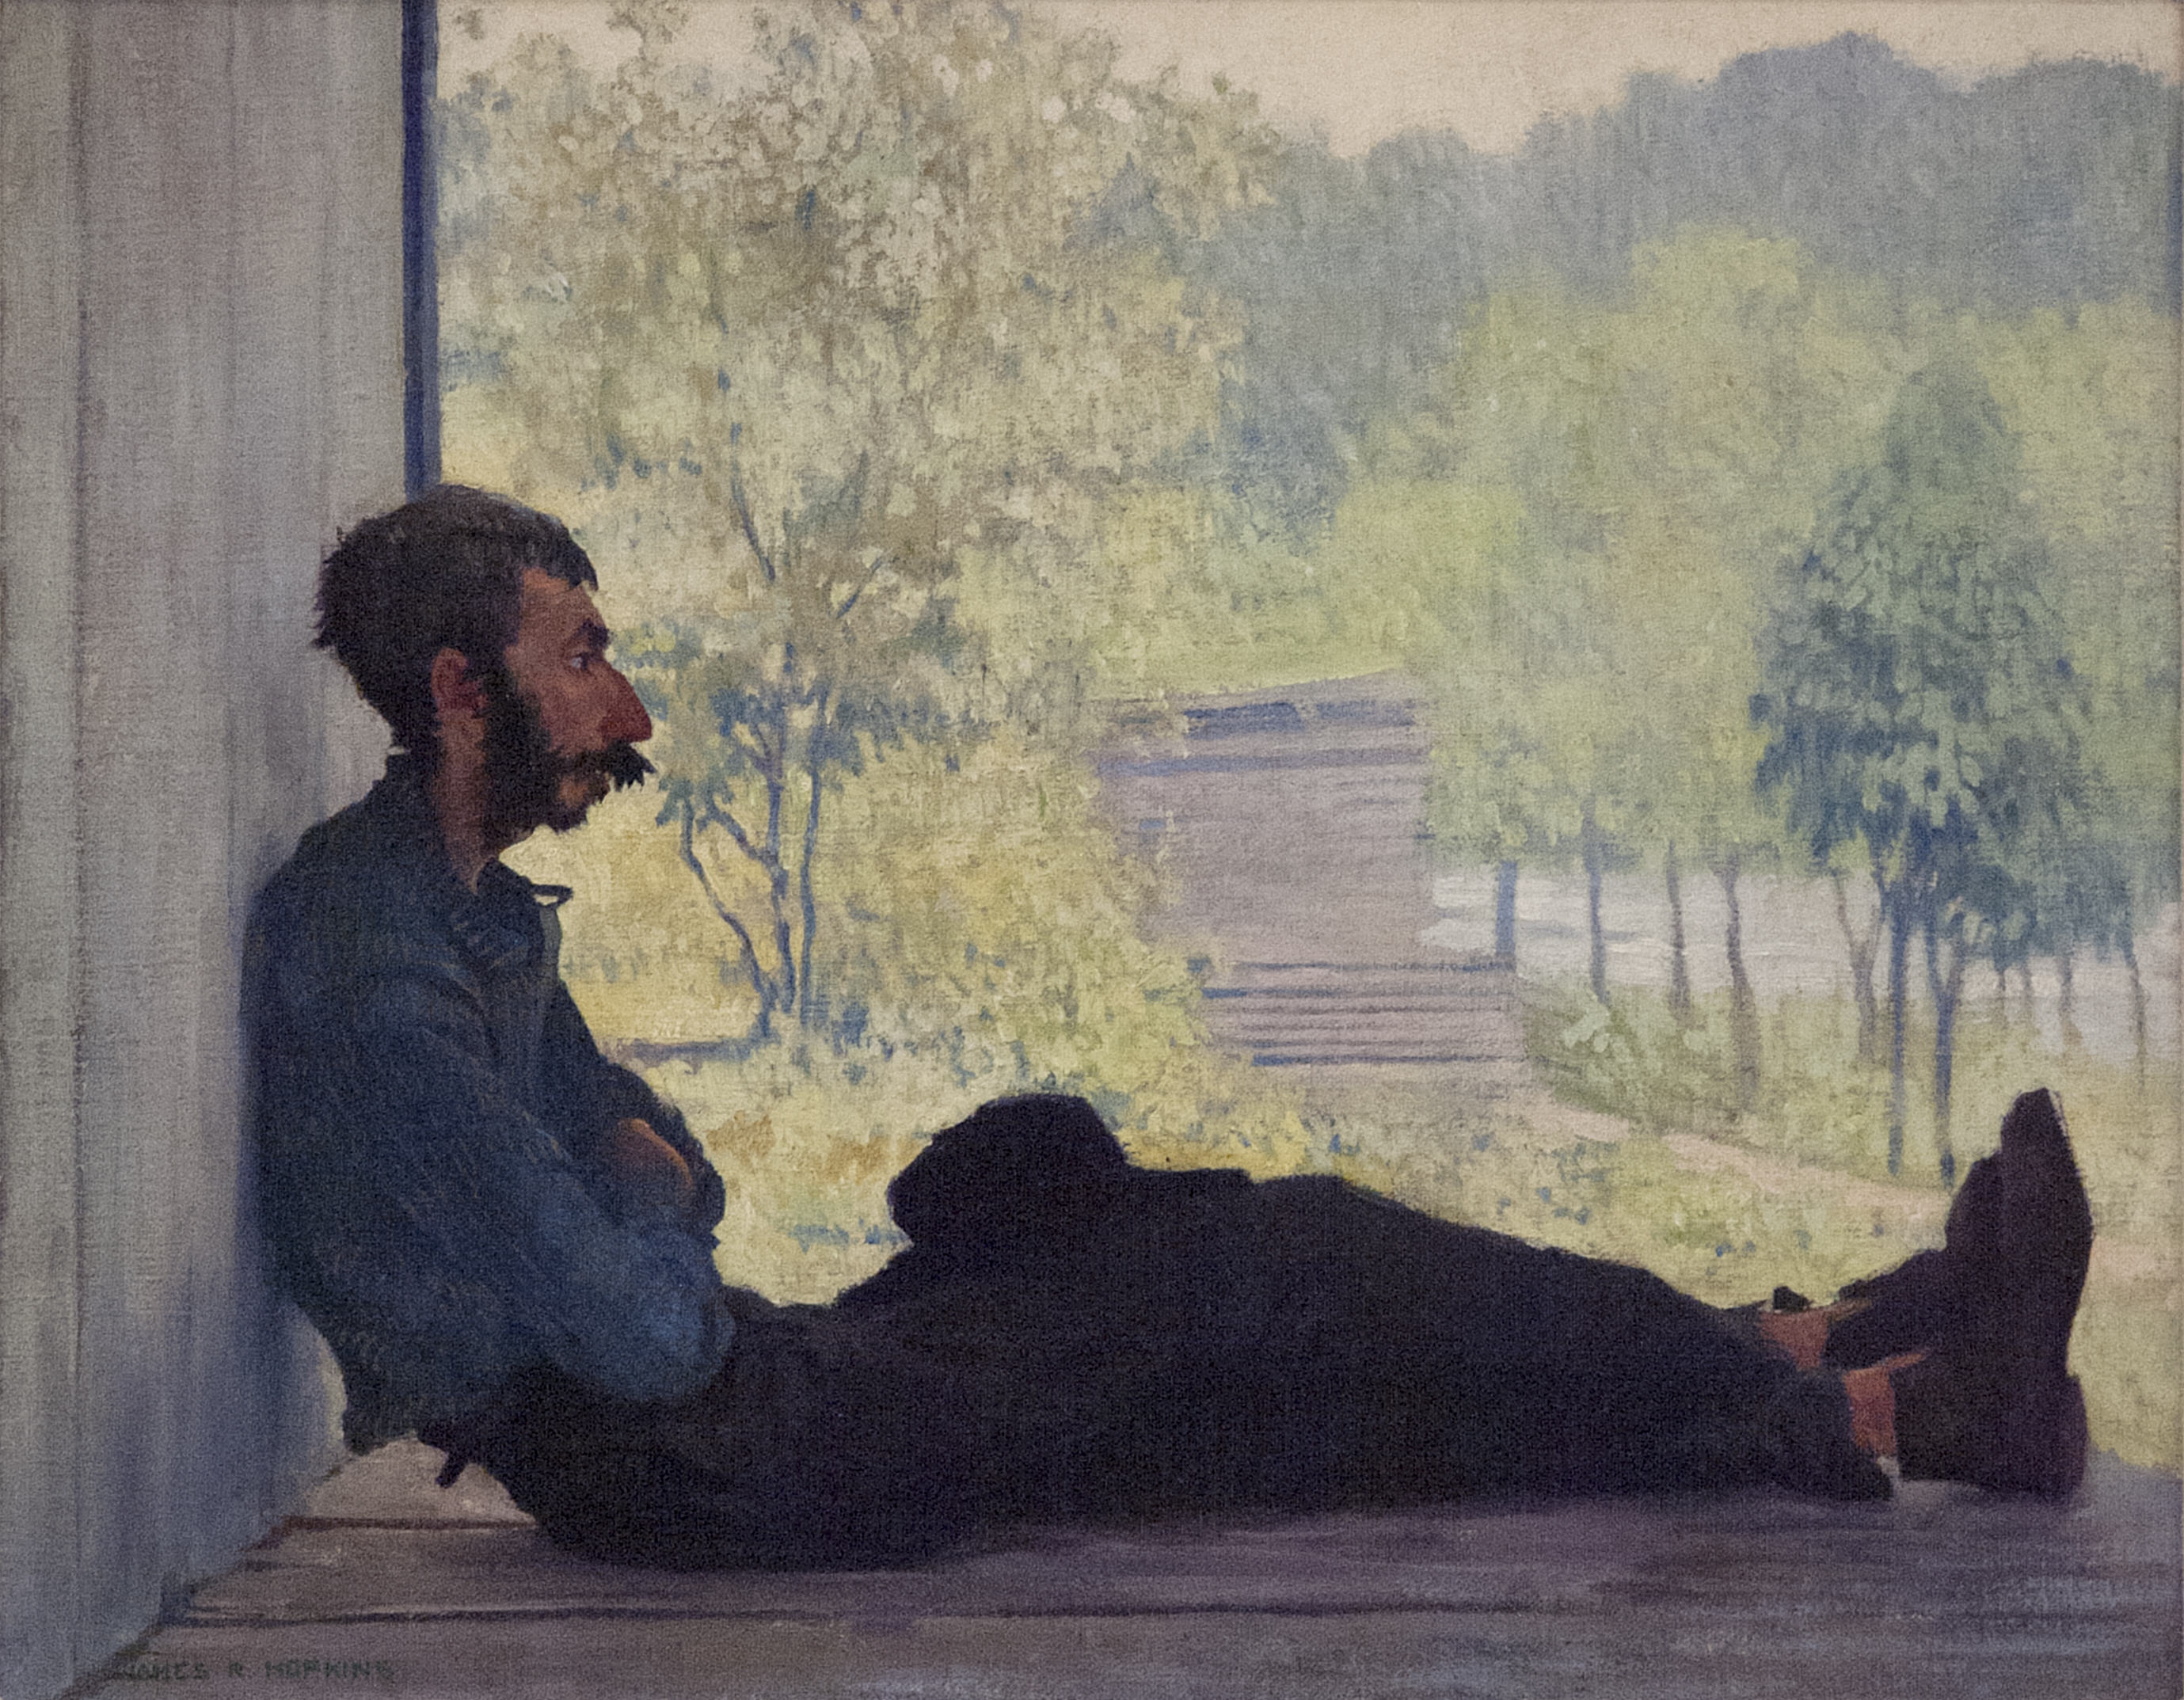 James R. Hopkins | RESTIN' | oil on canvas | 15 x 18-1/4"